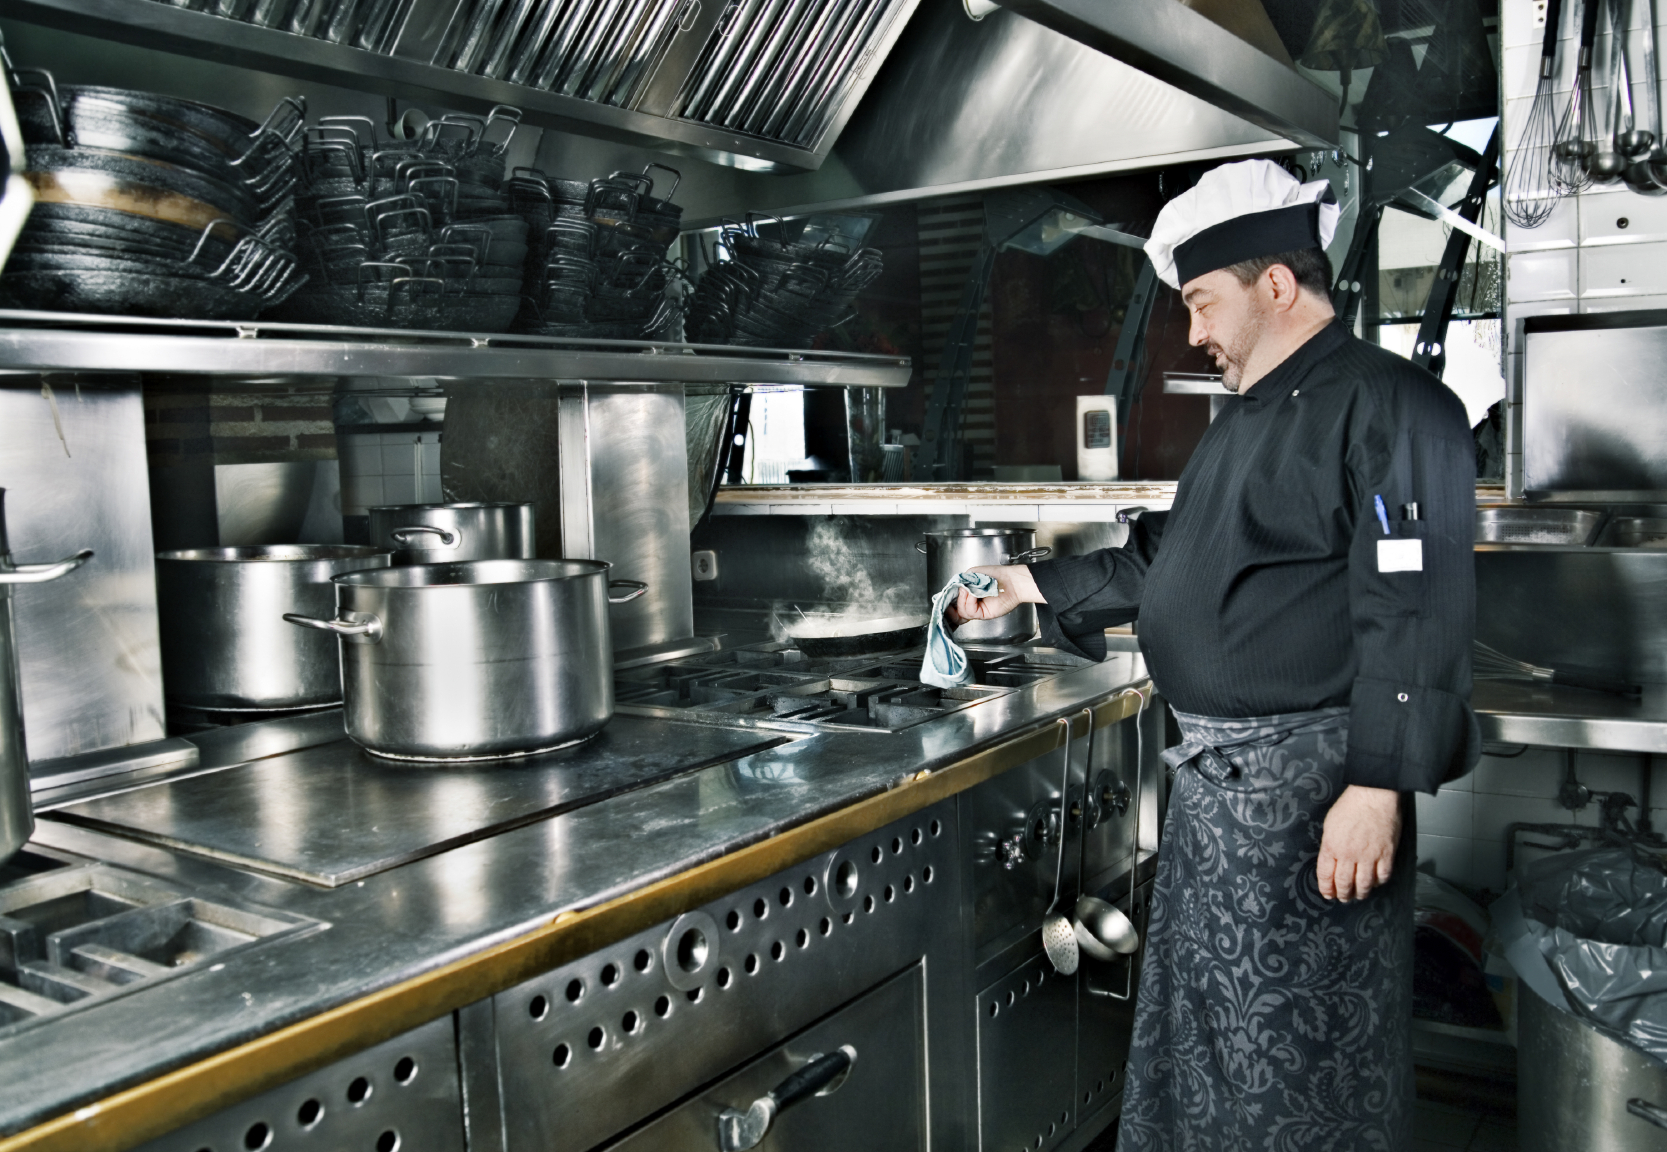 Tigerchef gives Advice for Planning Commercial Kitchen Design